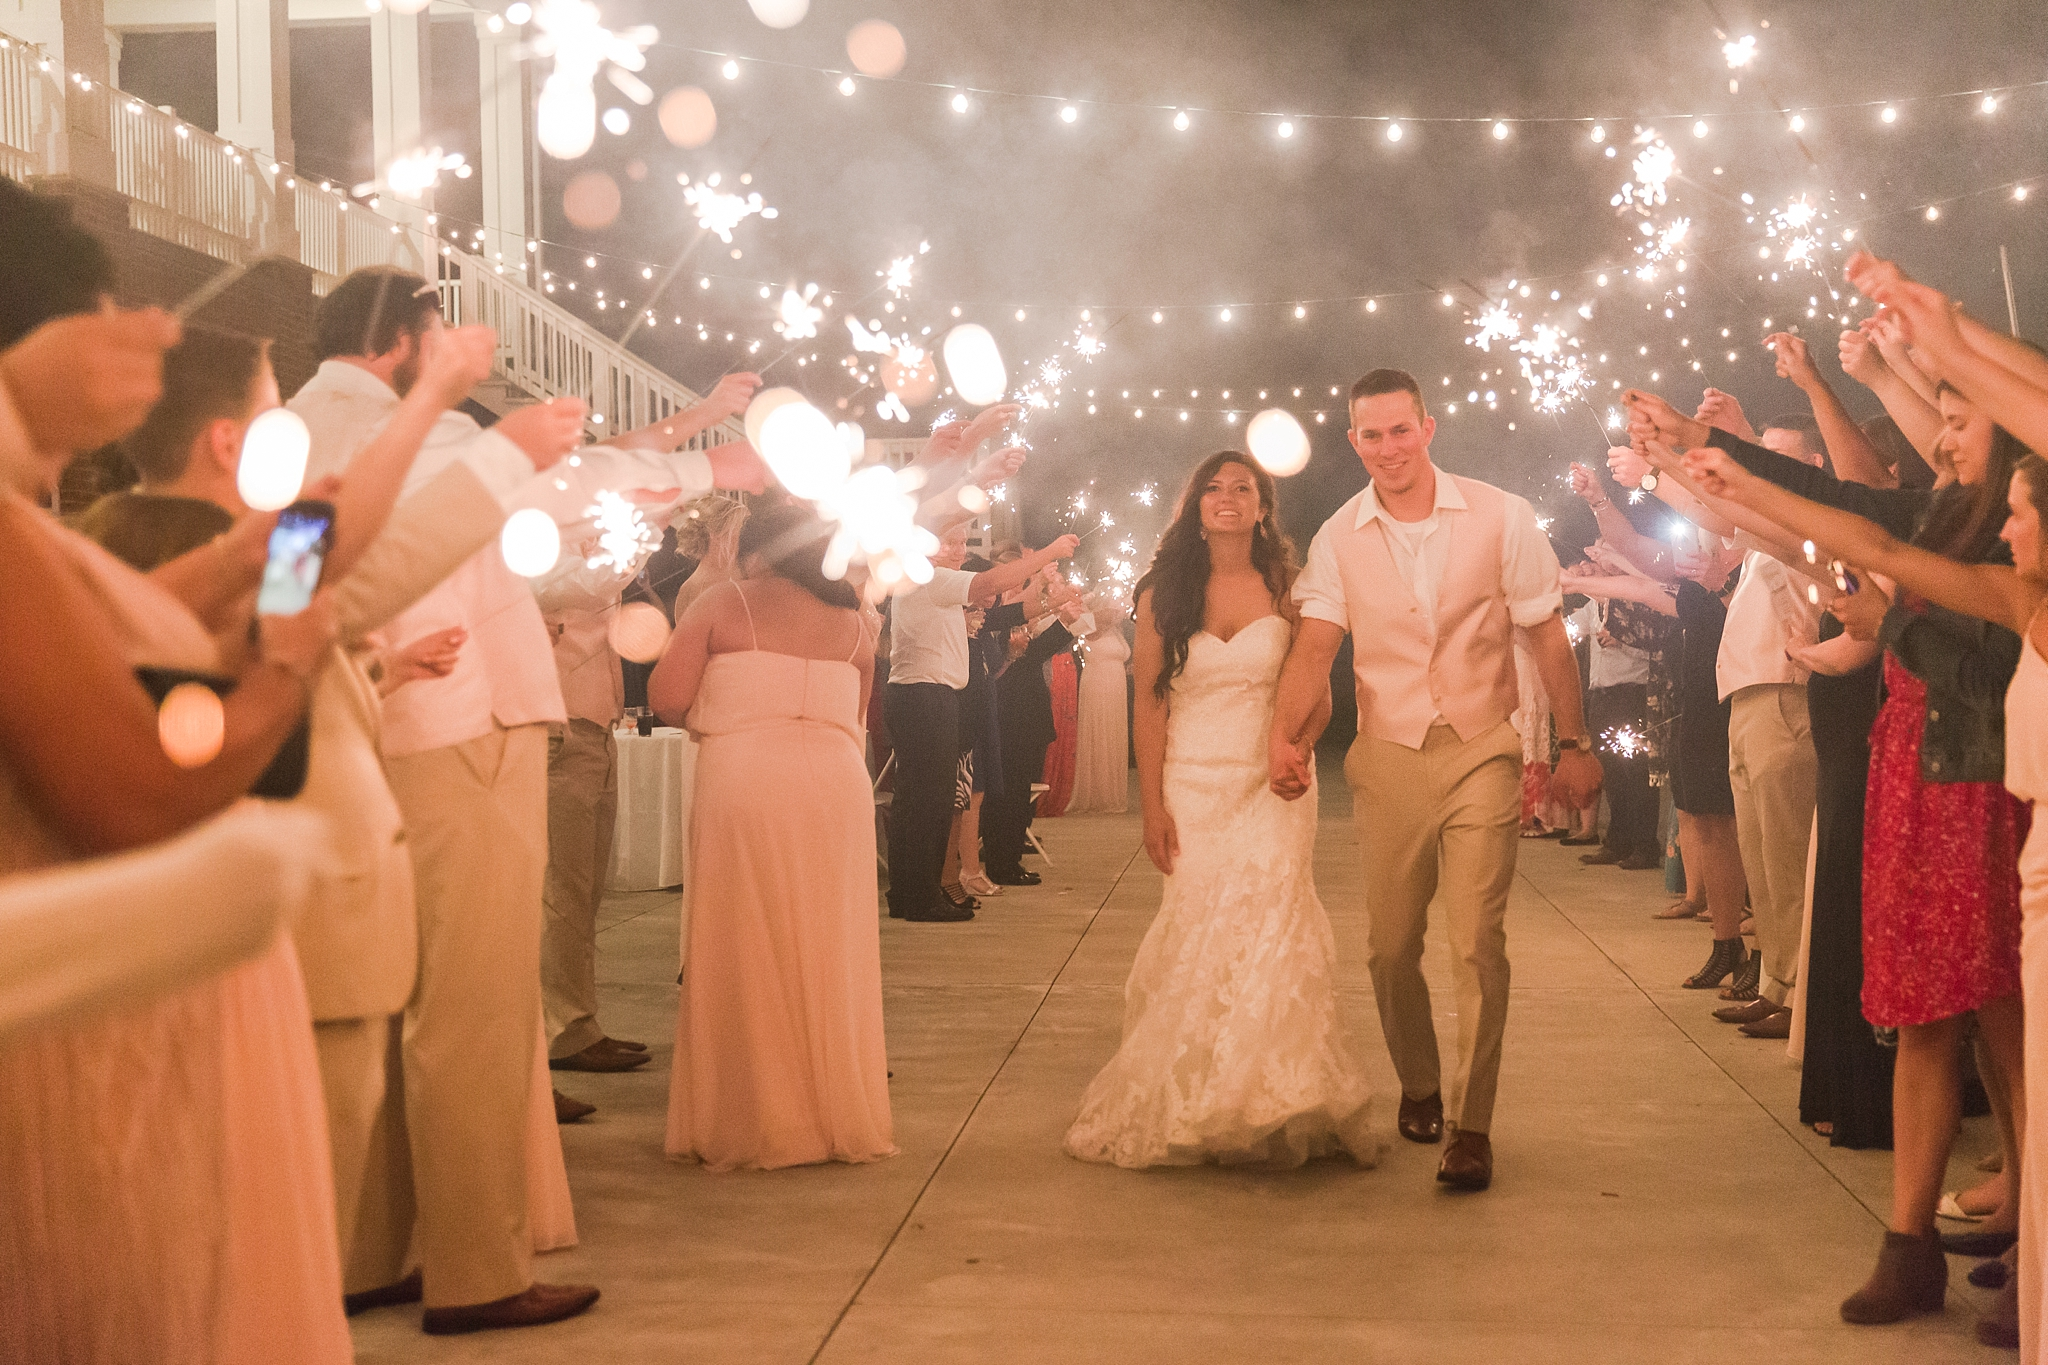 candid-timeless-wedding-photos-at-the-captains-club-in-grand-blanc-michigan-by-courtney-carolyn-photography_0115.jpg